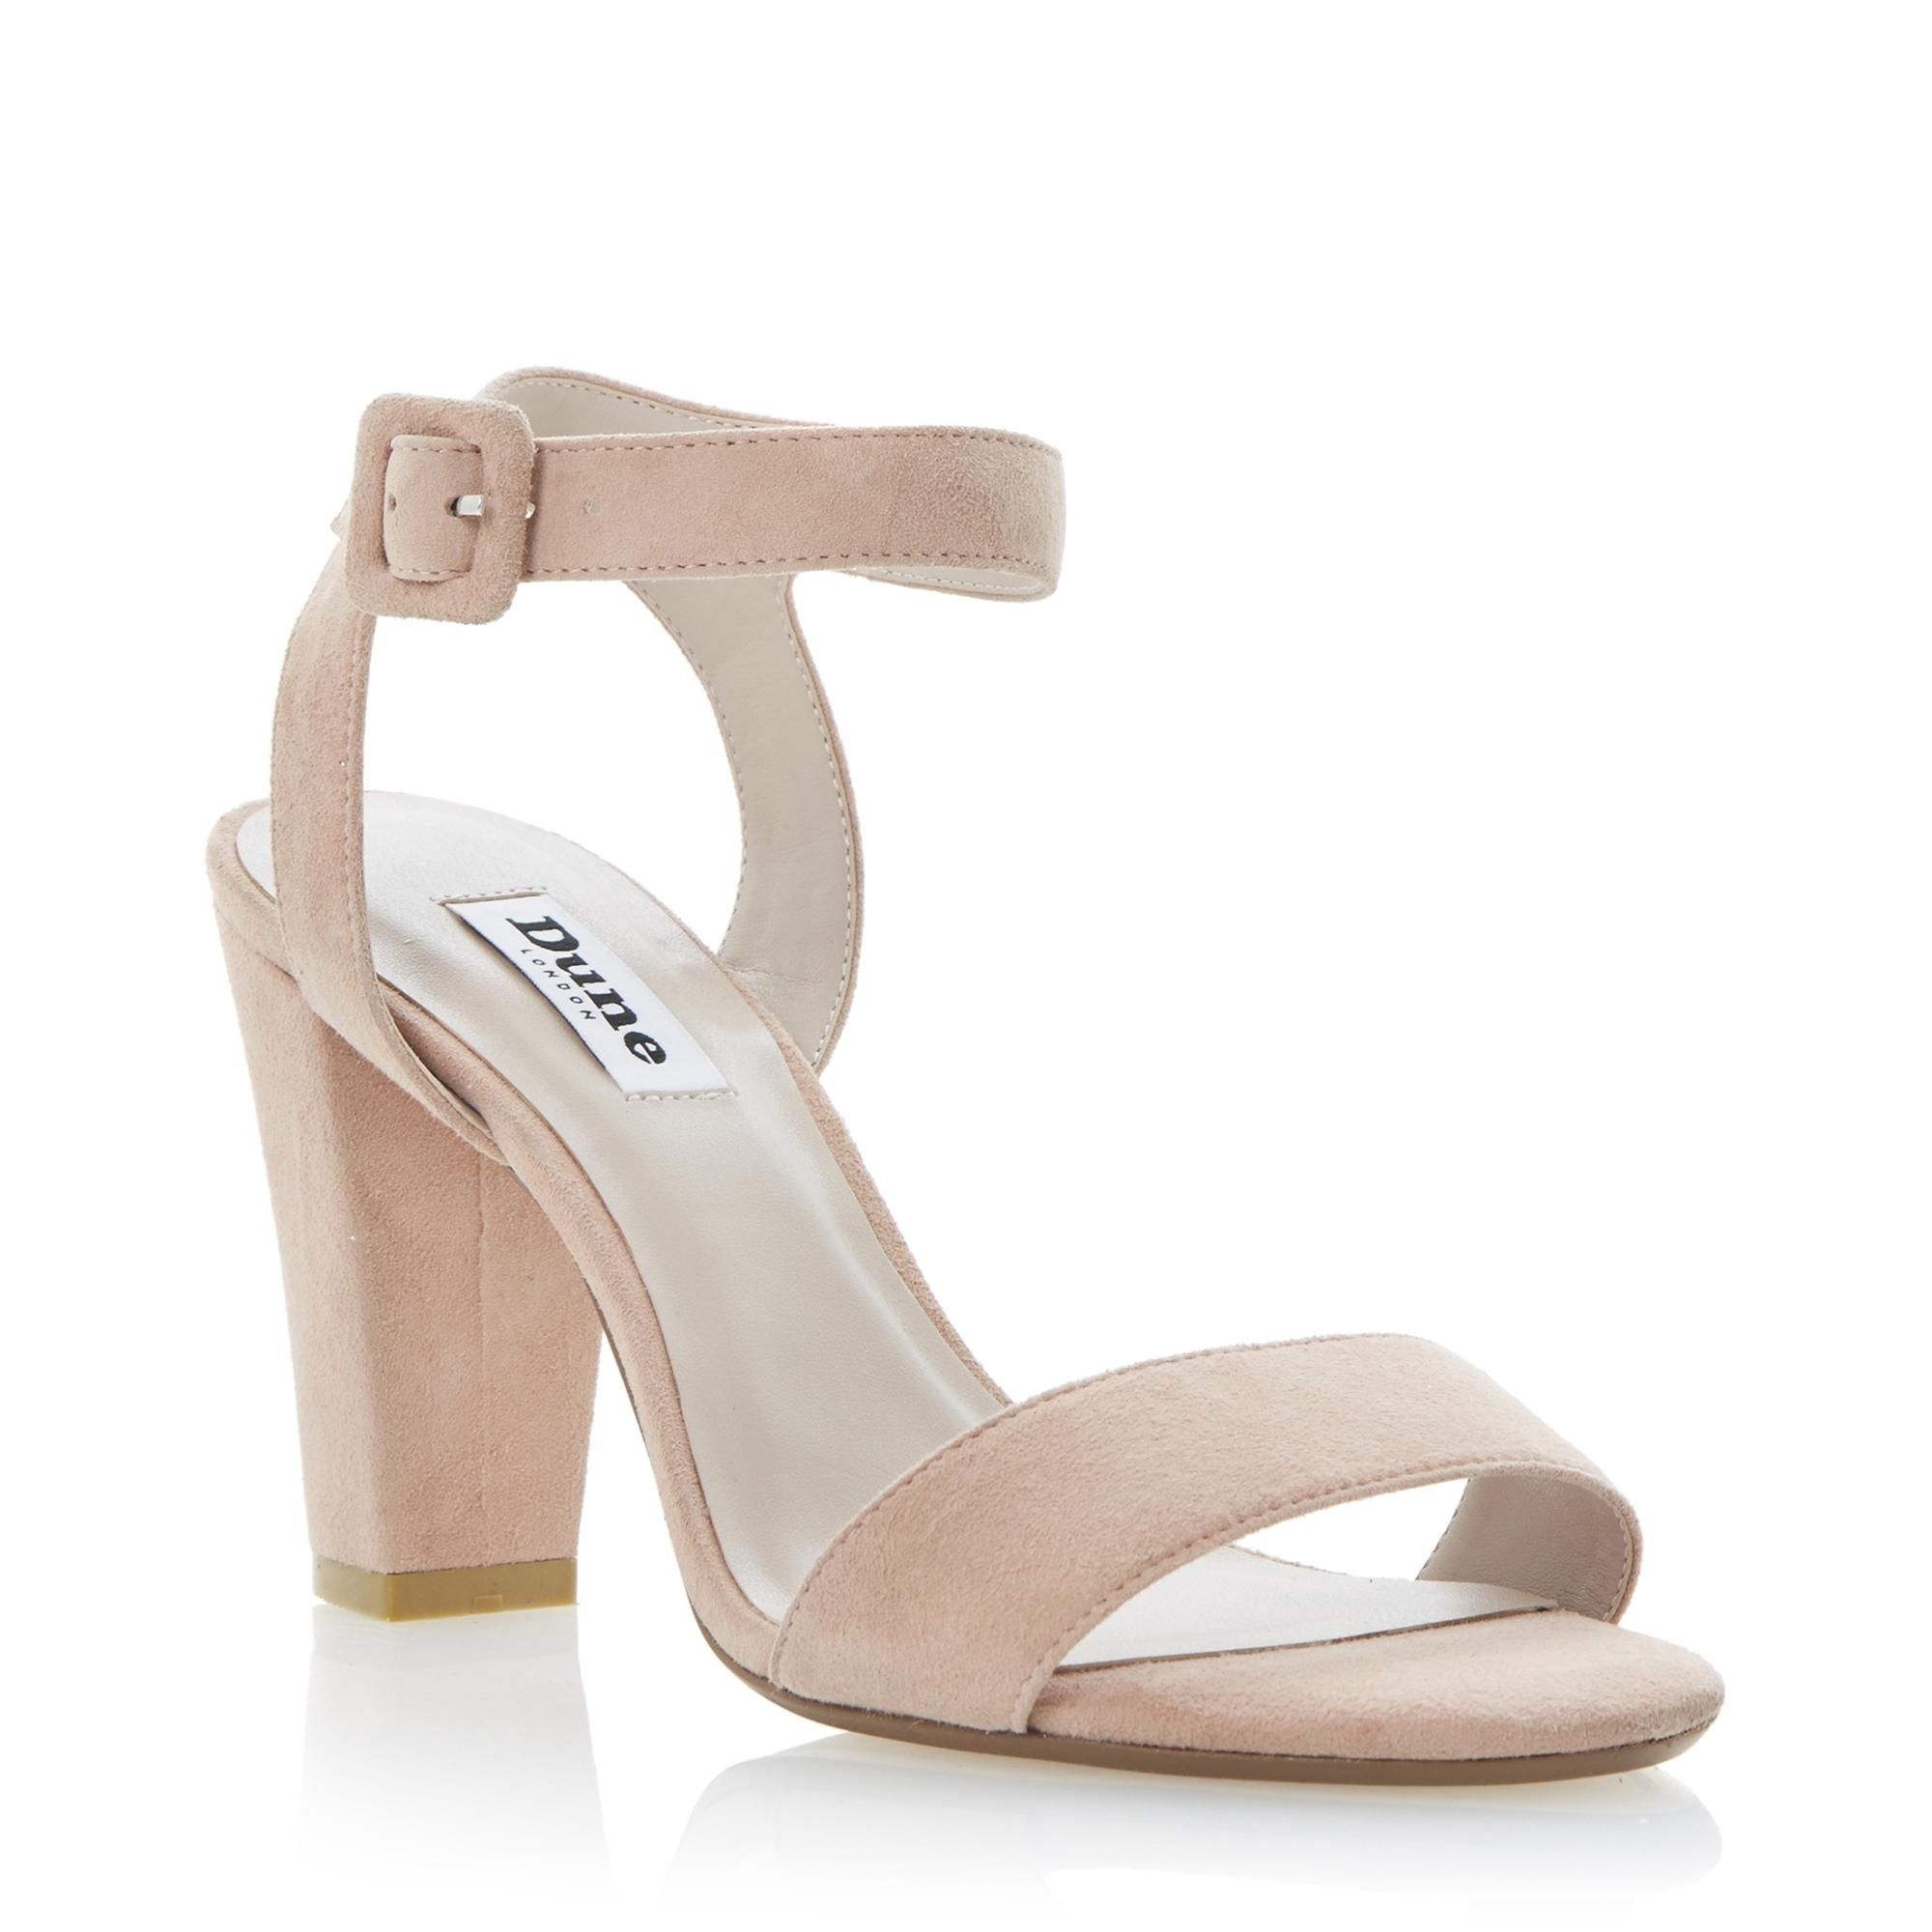 71a93902e DUNE LADIES HARPERS - Two Part Ankle Strap Block Heel Sandal nude | Dune  Shoes Online